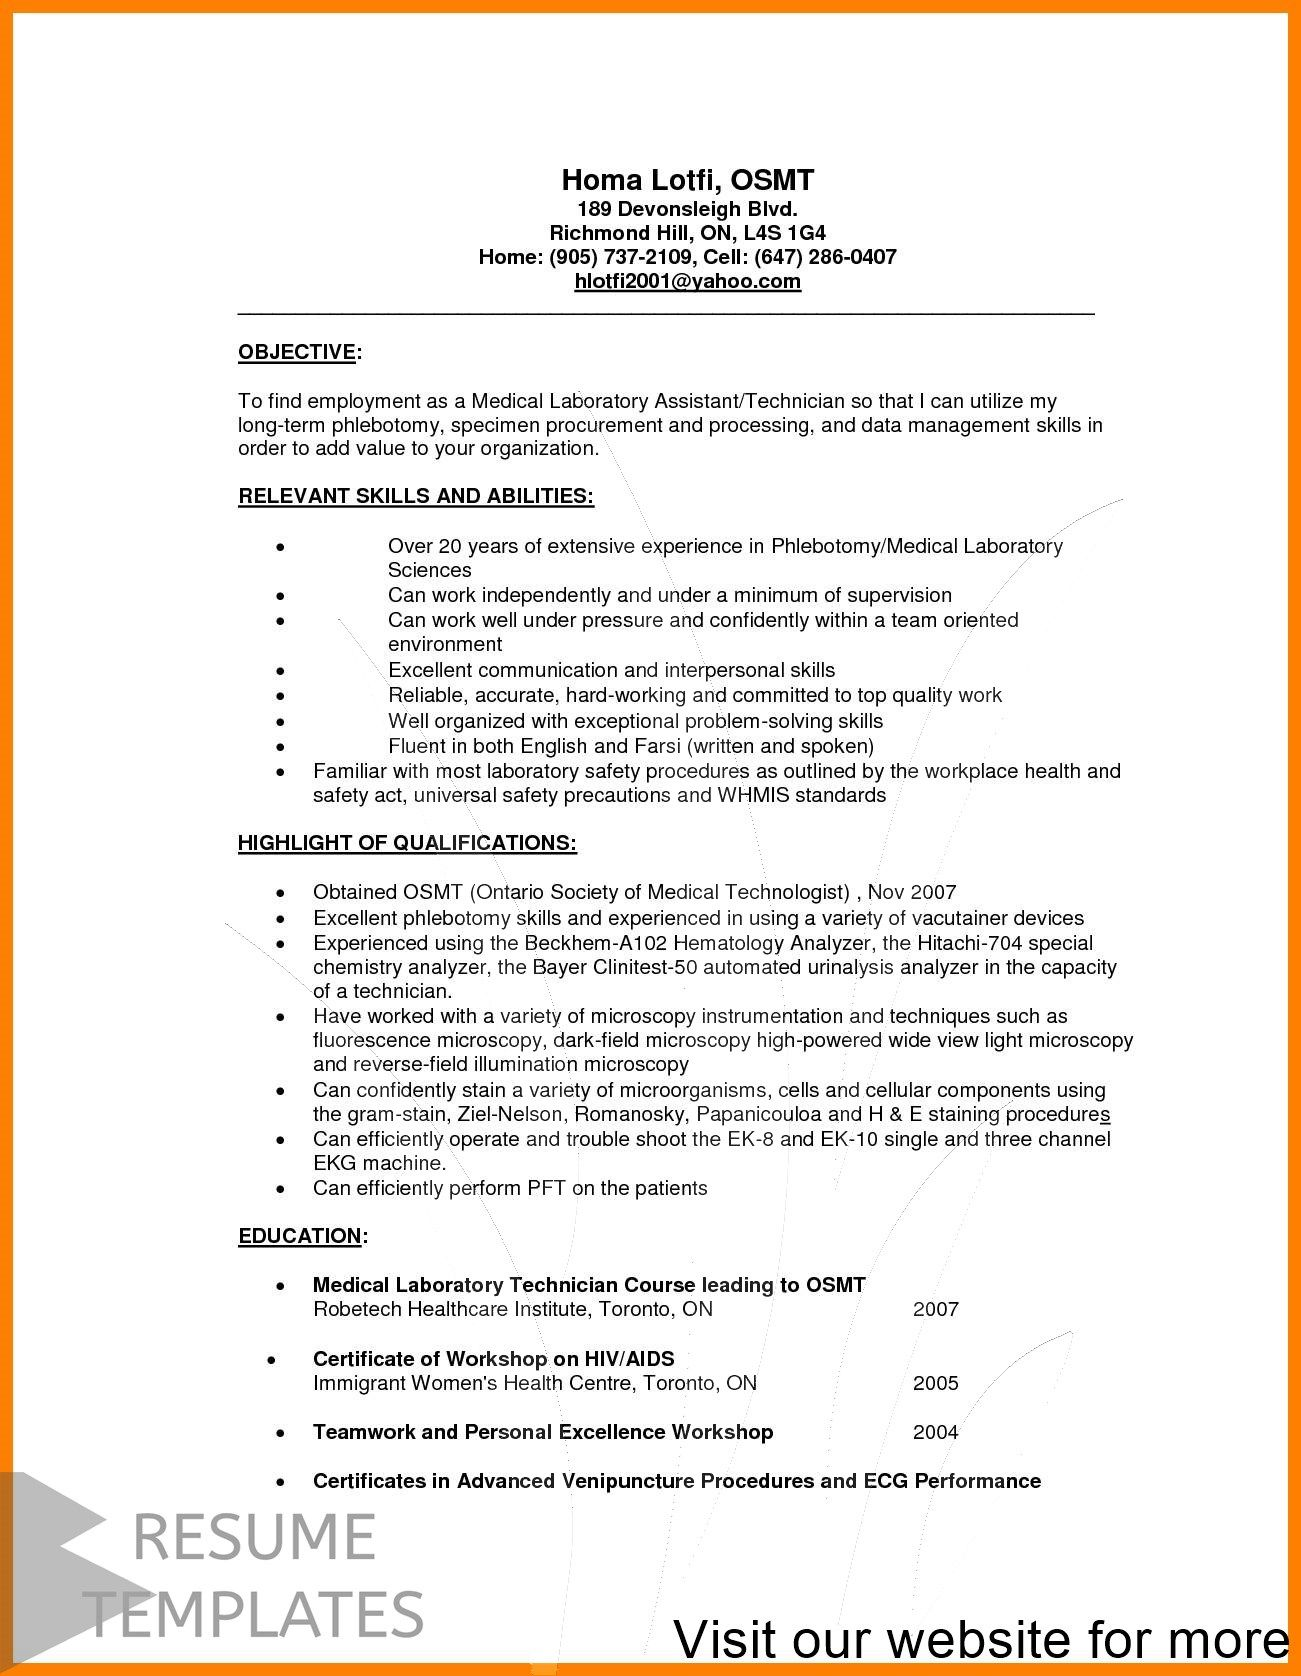 resume example about me professional in 2020 cv format docx biodata for job application pdf download free resumes to fill out and print